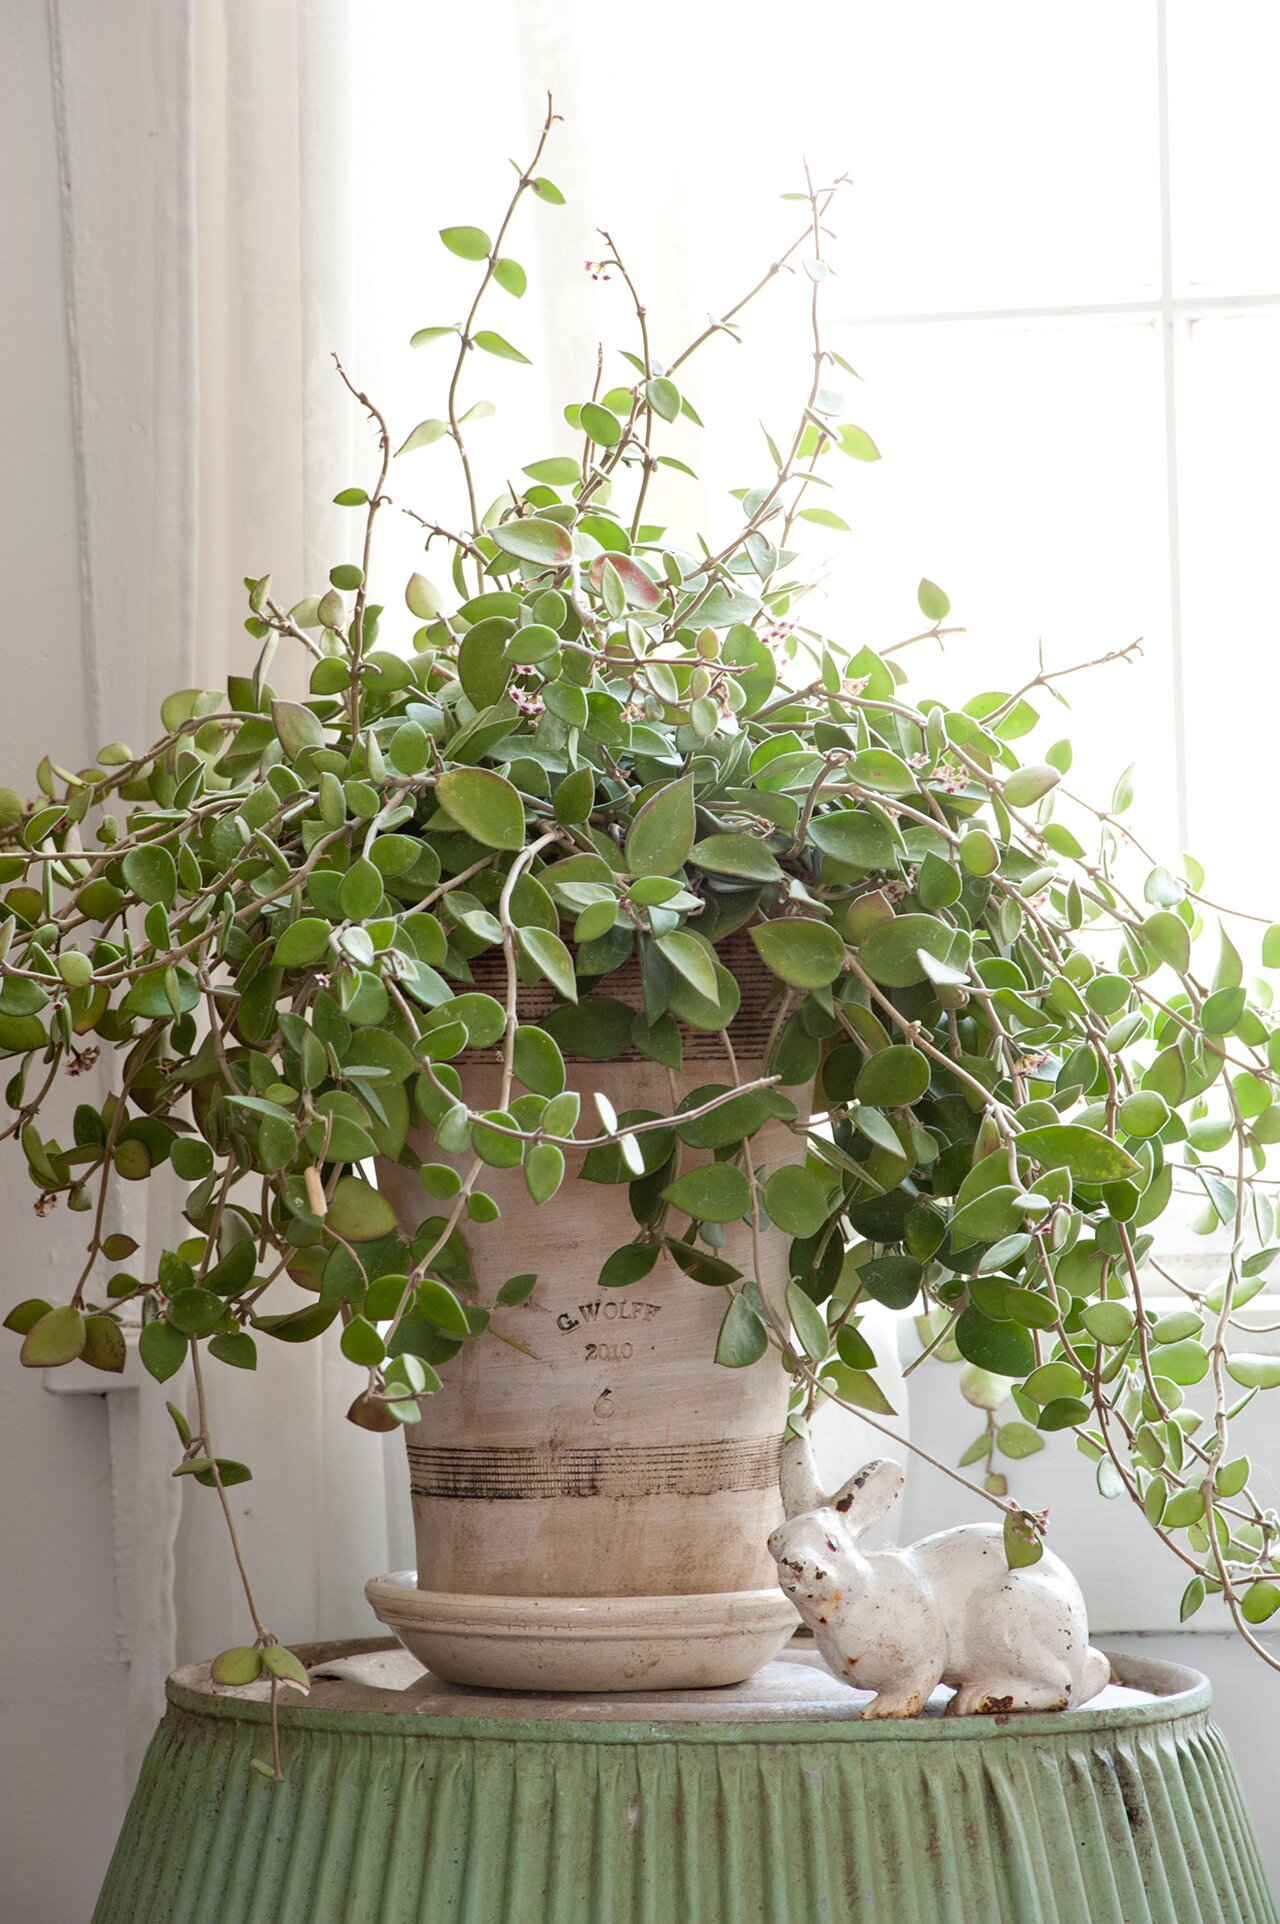 23 of Our Favorite Low-Light Houseplants Red Vining Houseplants on design red, pots red, flowers red, cactus red, nature red, peppers red, ornamental grasses red, mums red, berries red, orchids red, animals red,